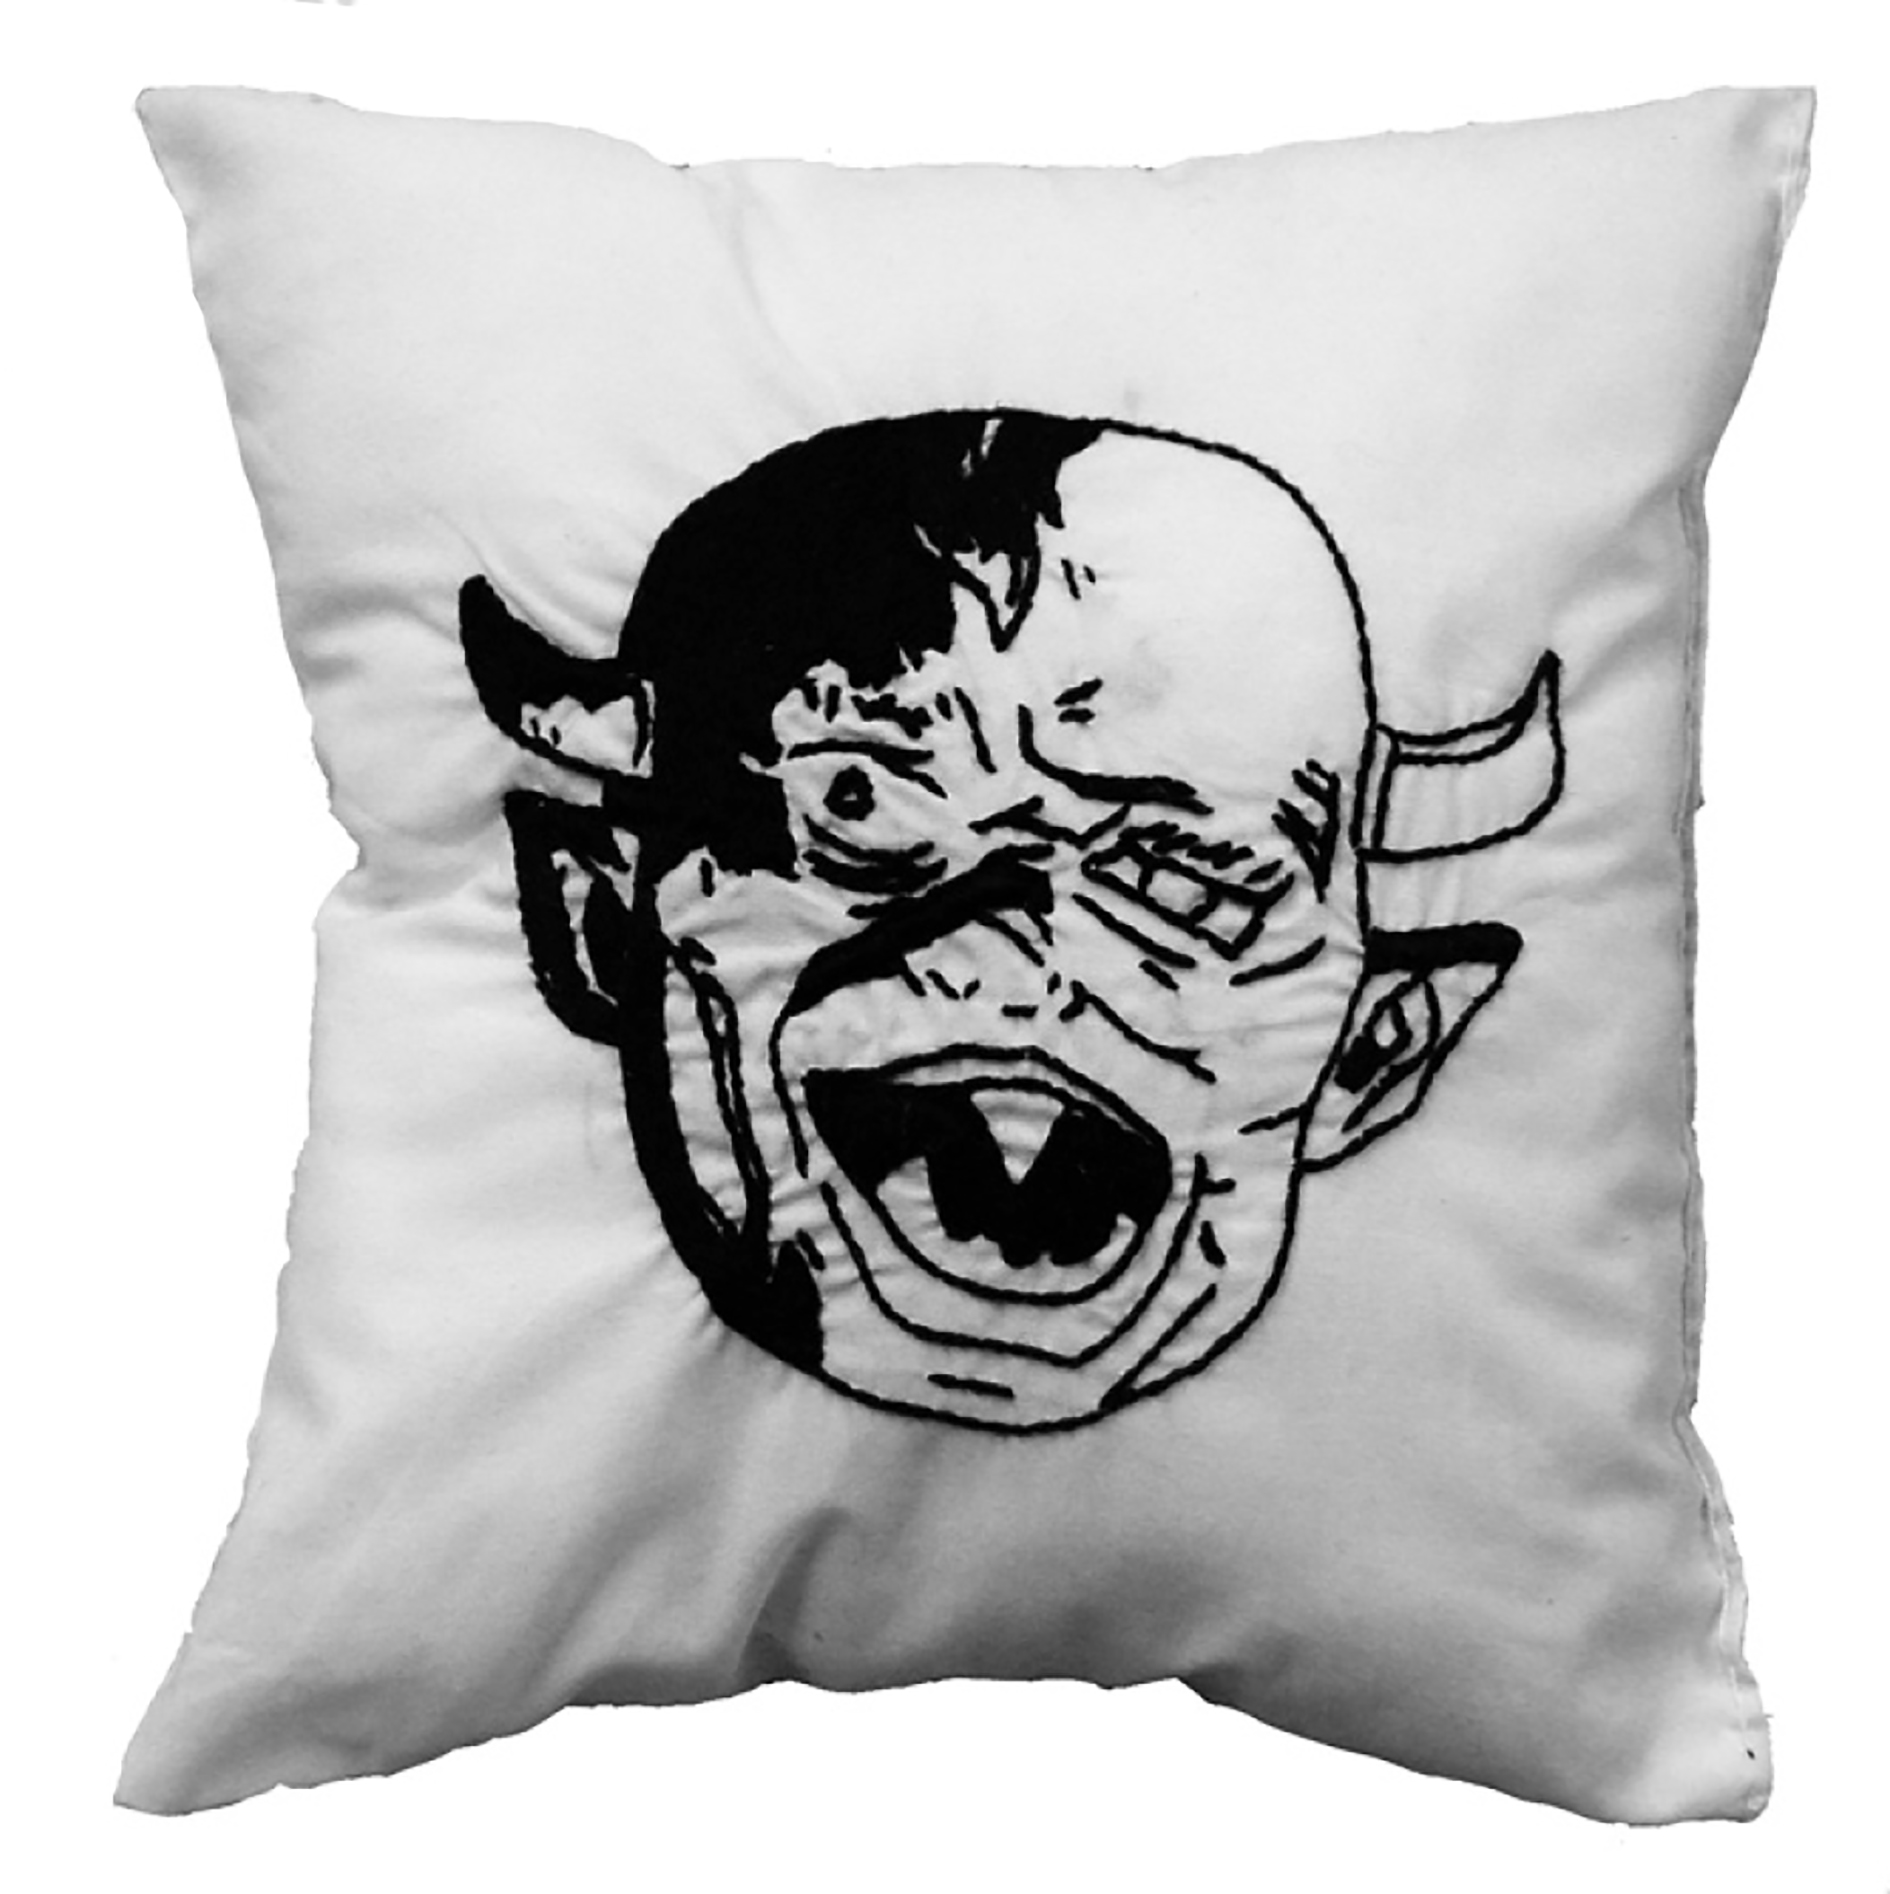 confort_pillow_elcoco.jpg